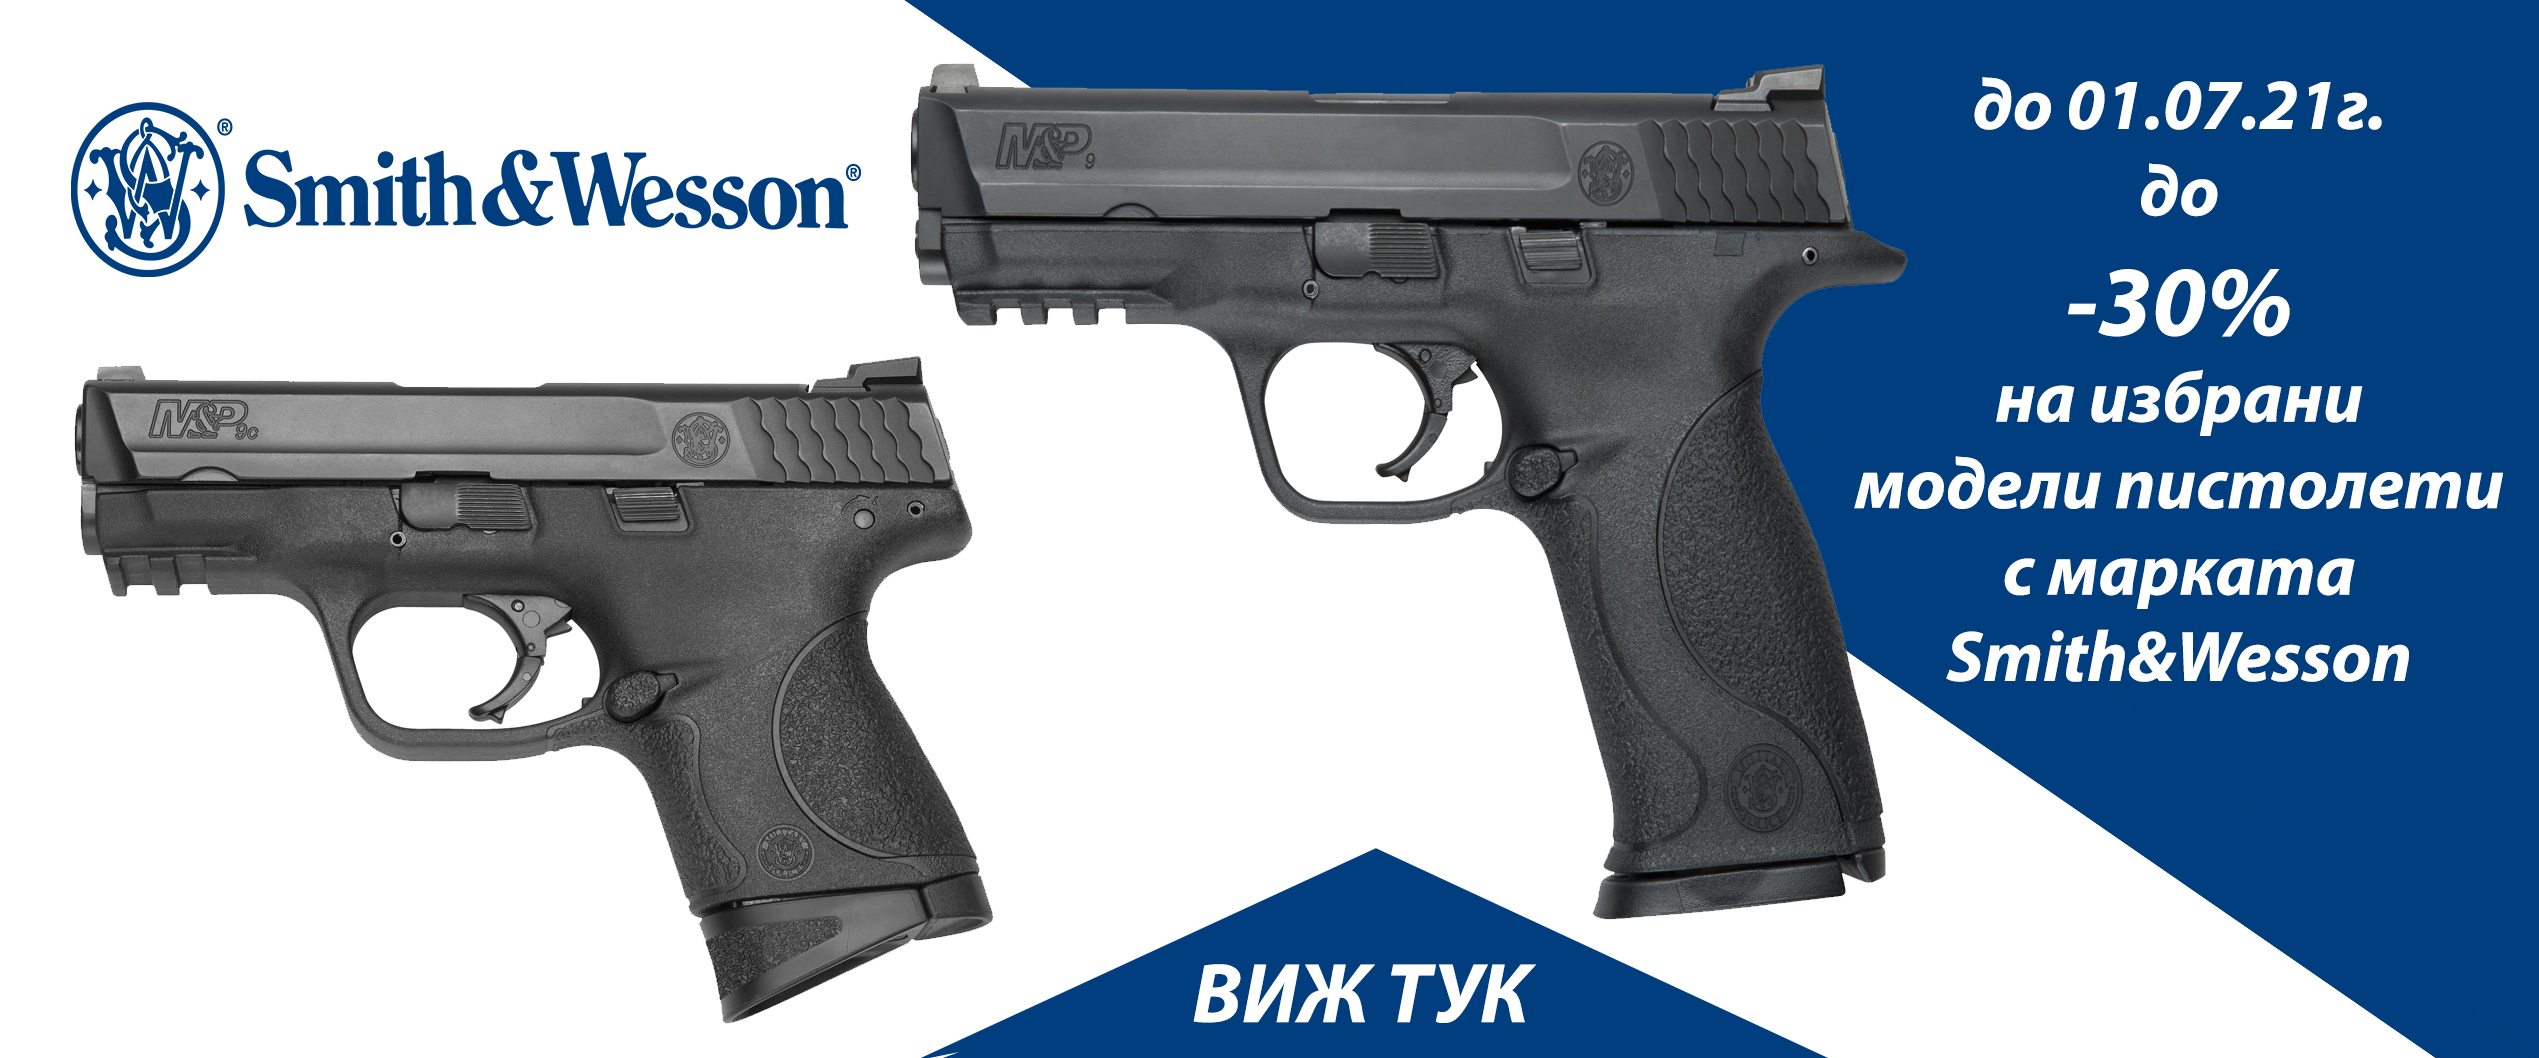 Smith and Wesson промоция